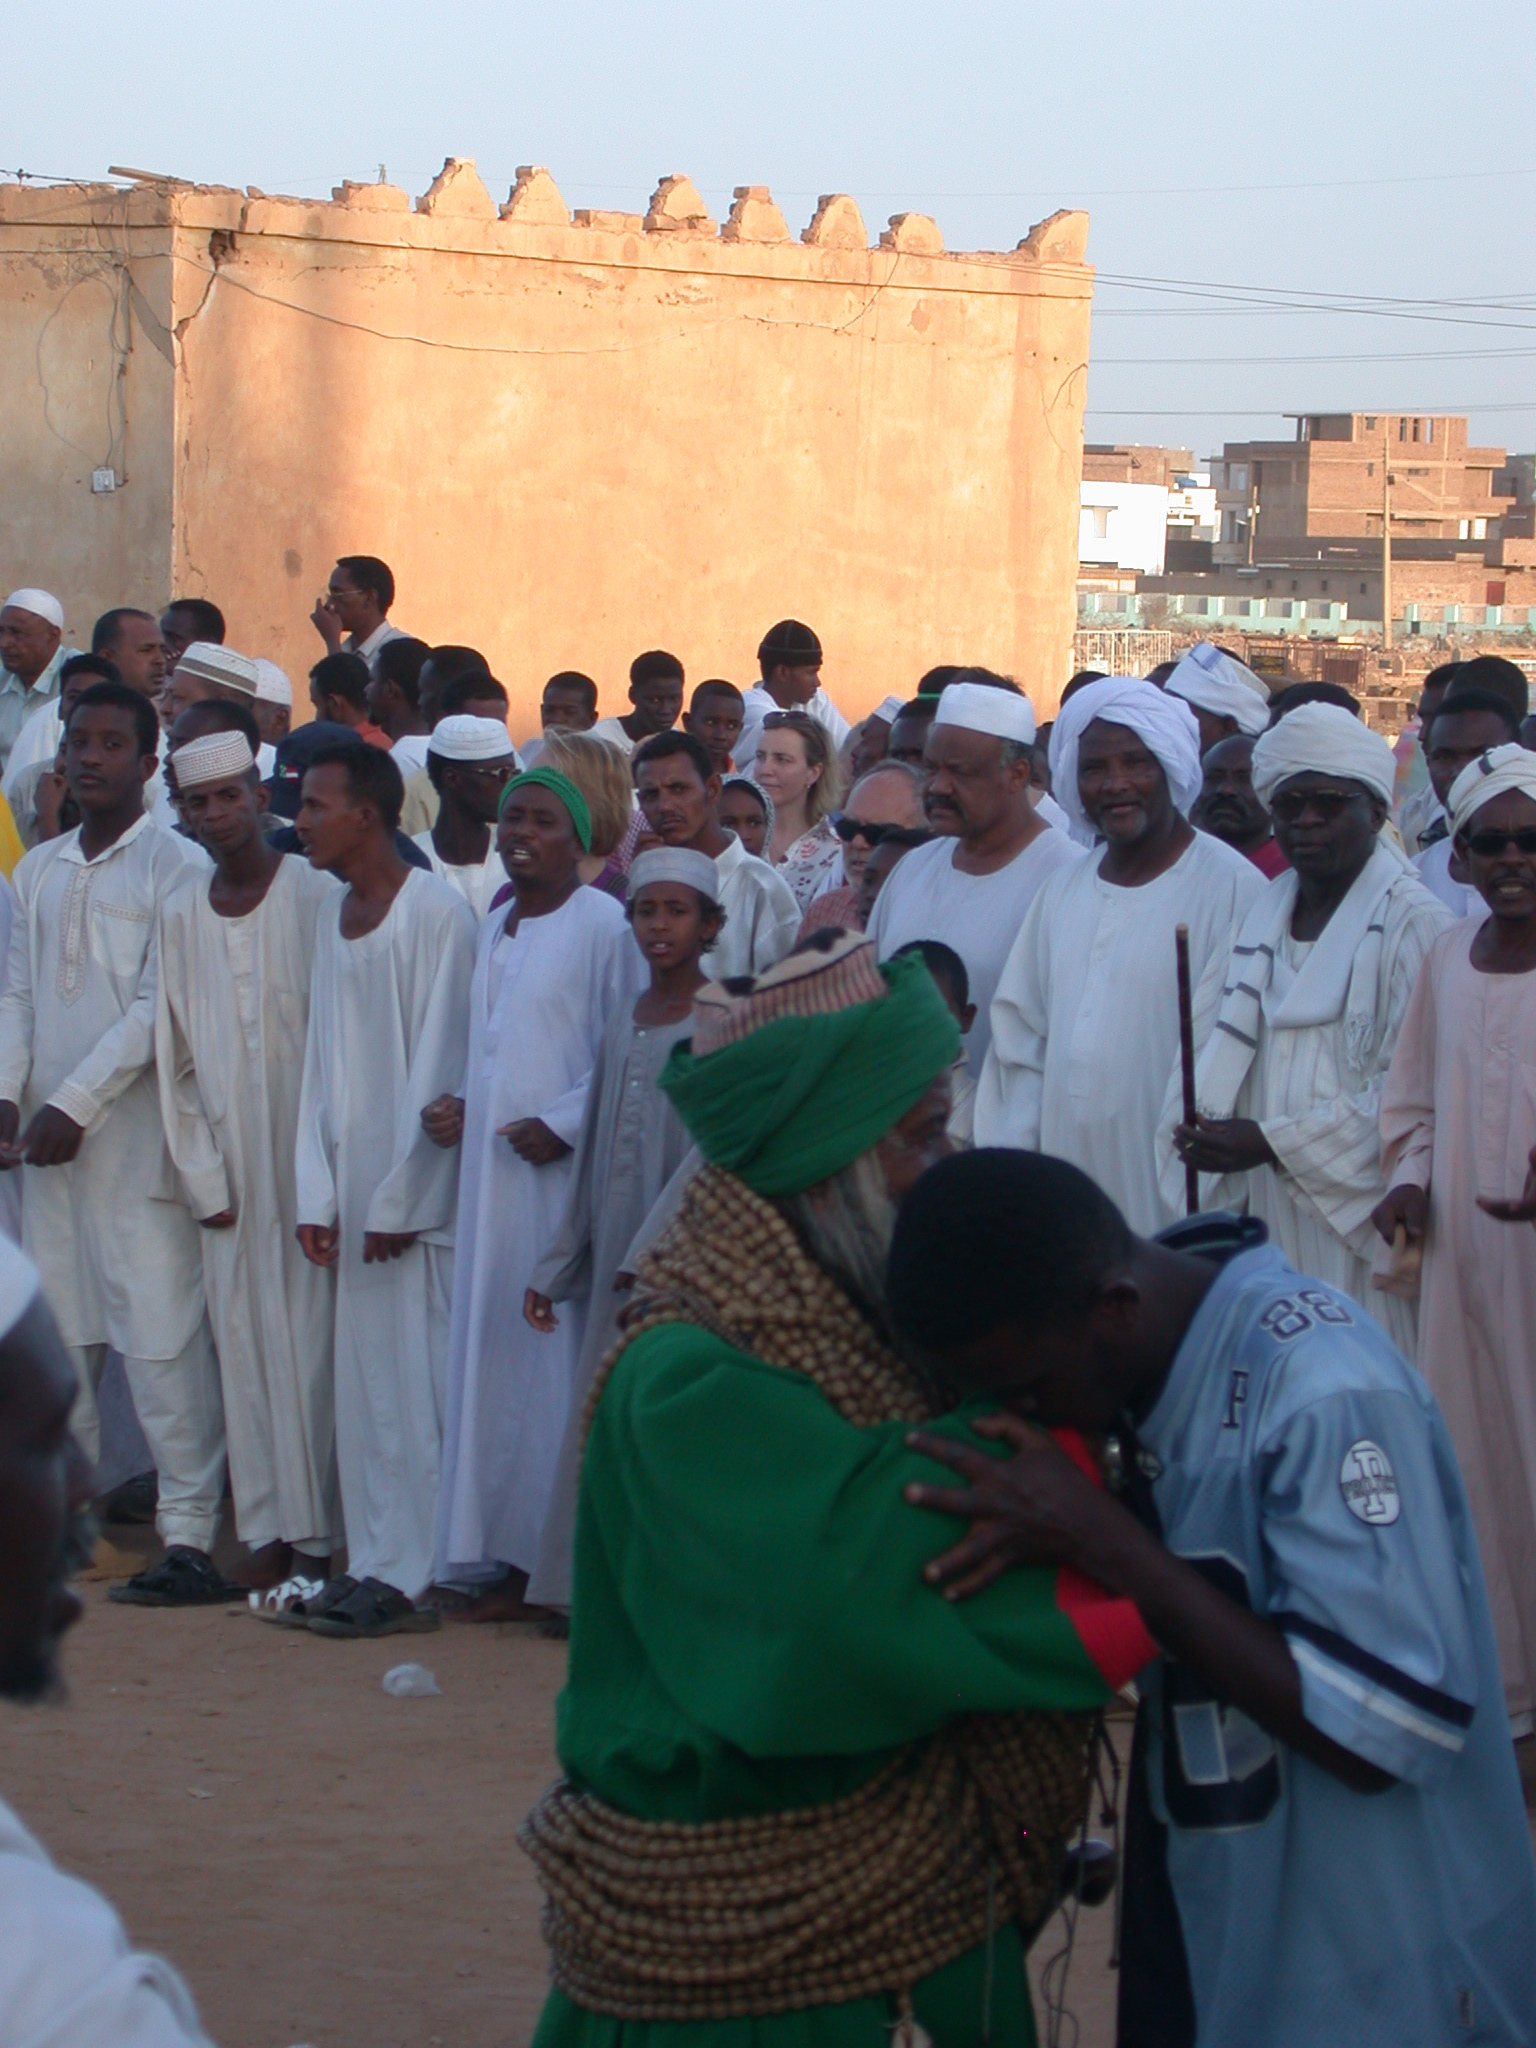 Sufis Embracing at Sufi Dancing Site, Omdurman, Sudan